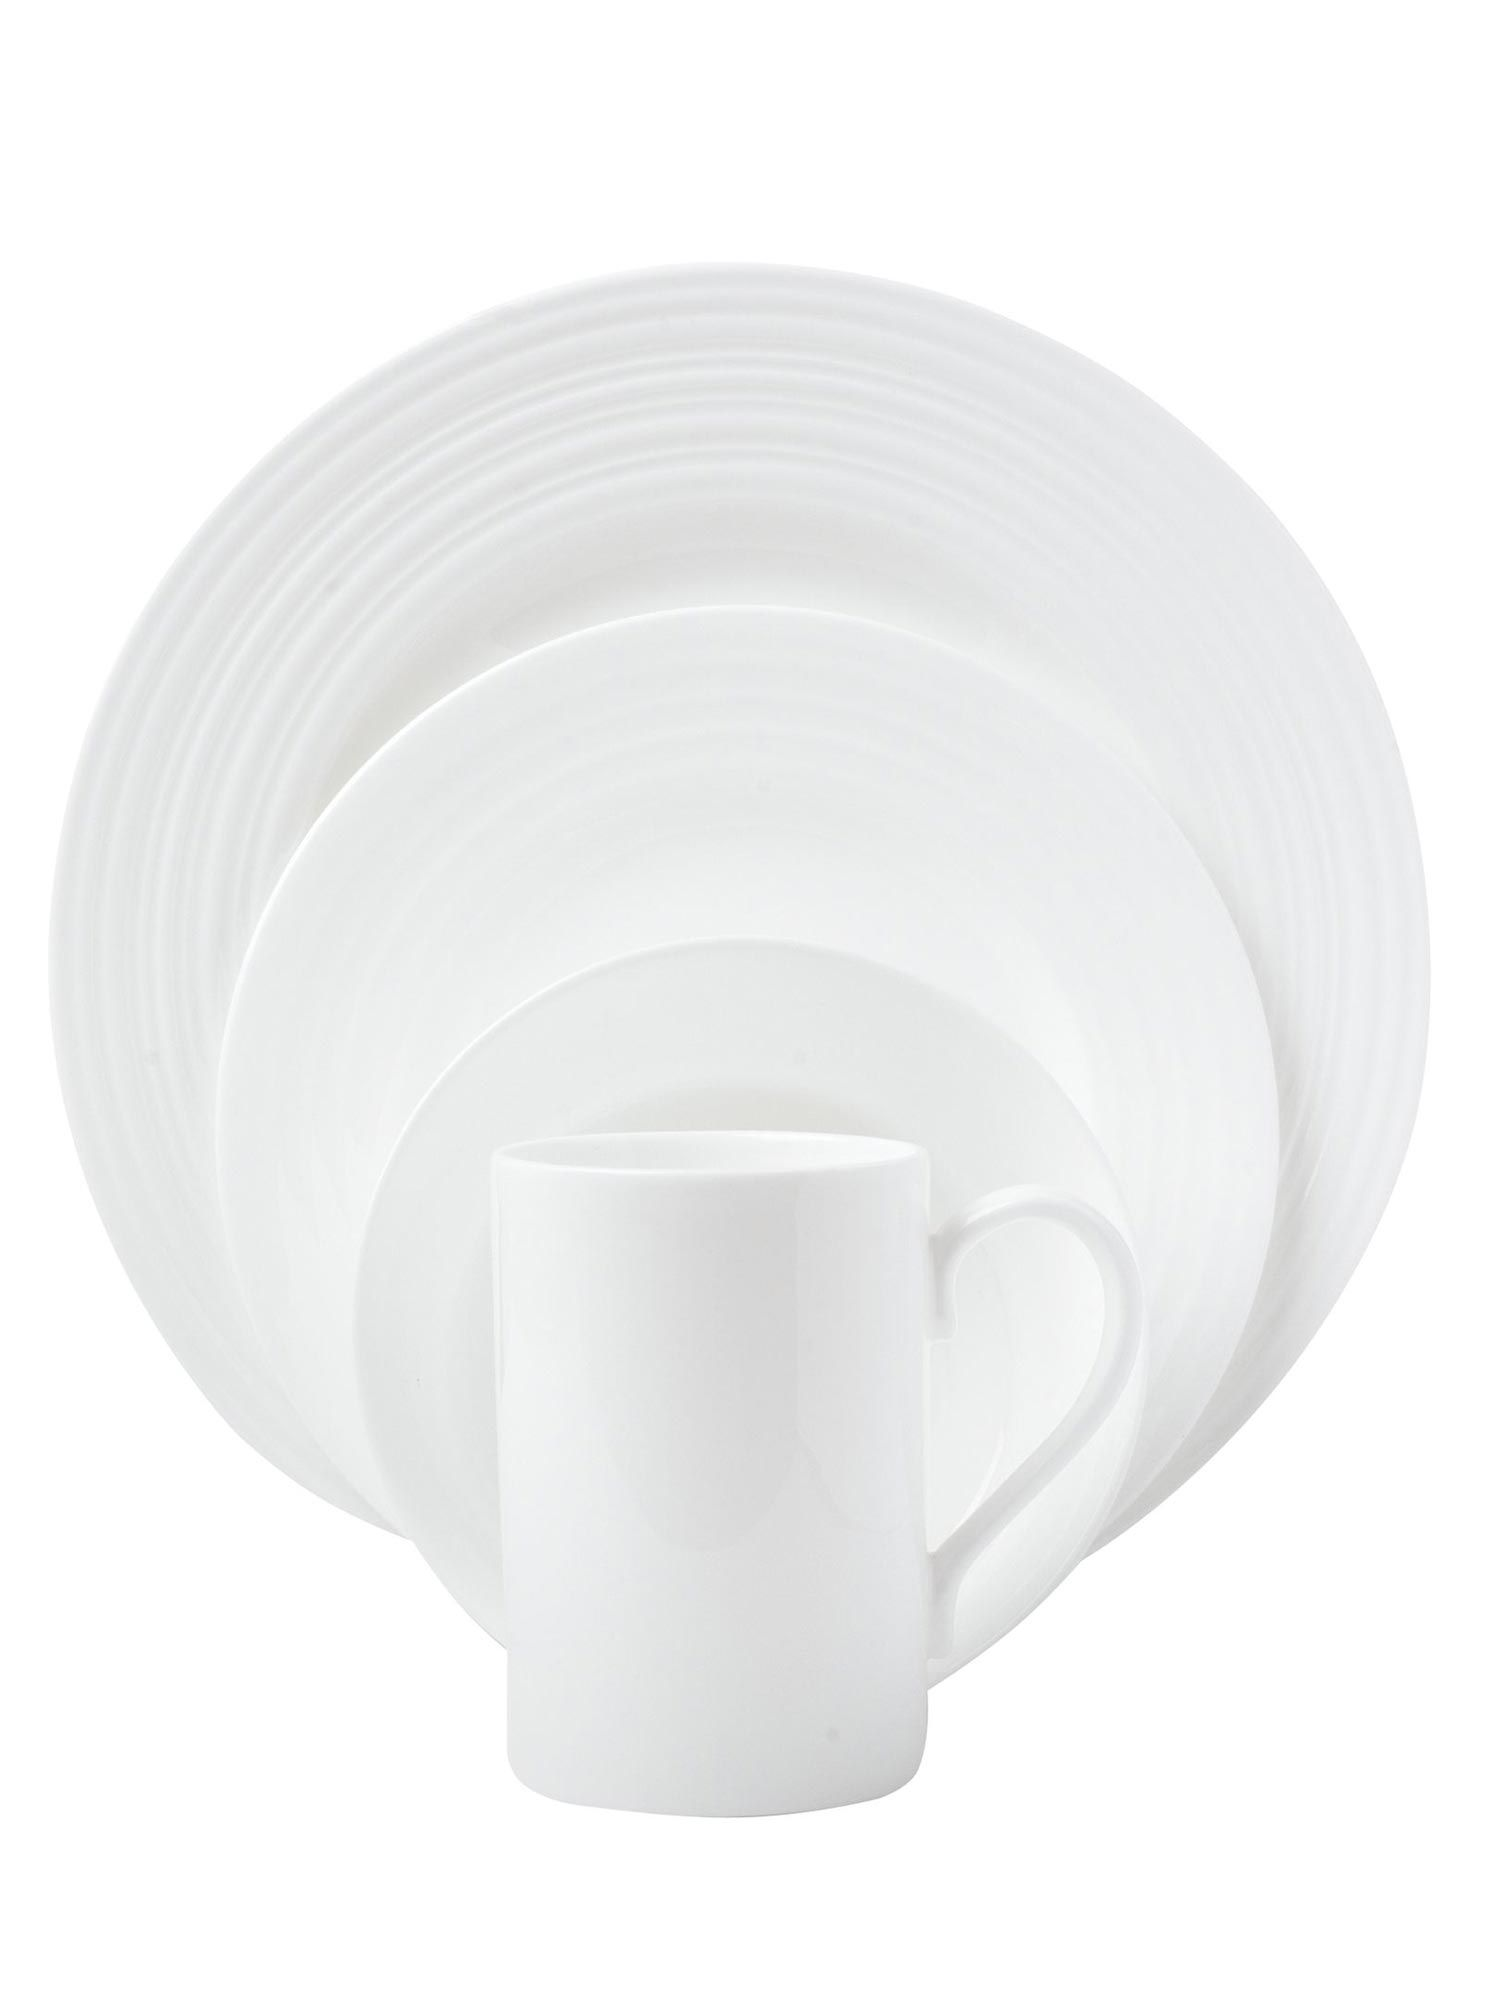 Soho bone china dinnerware